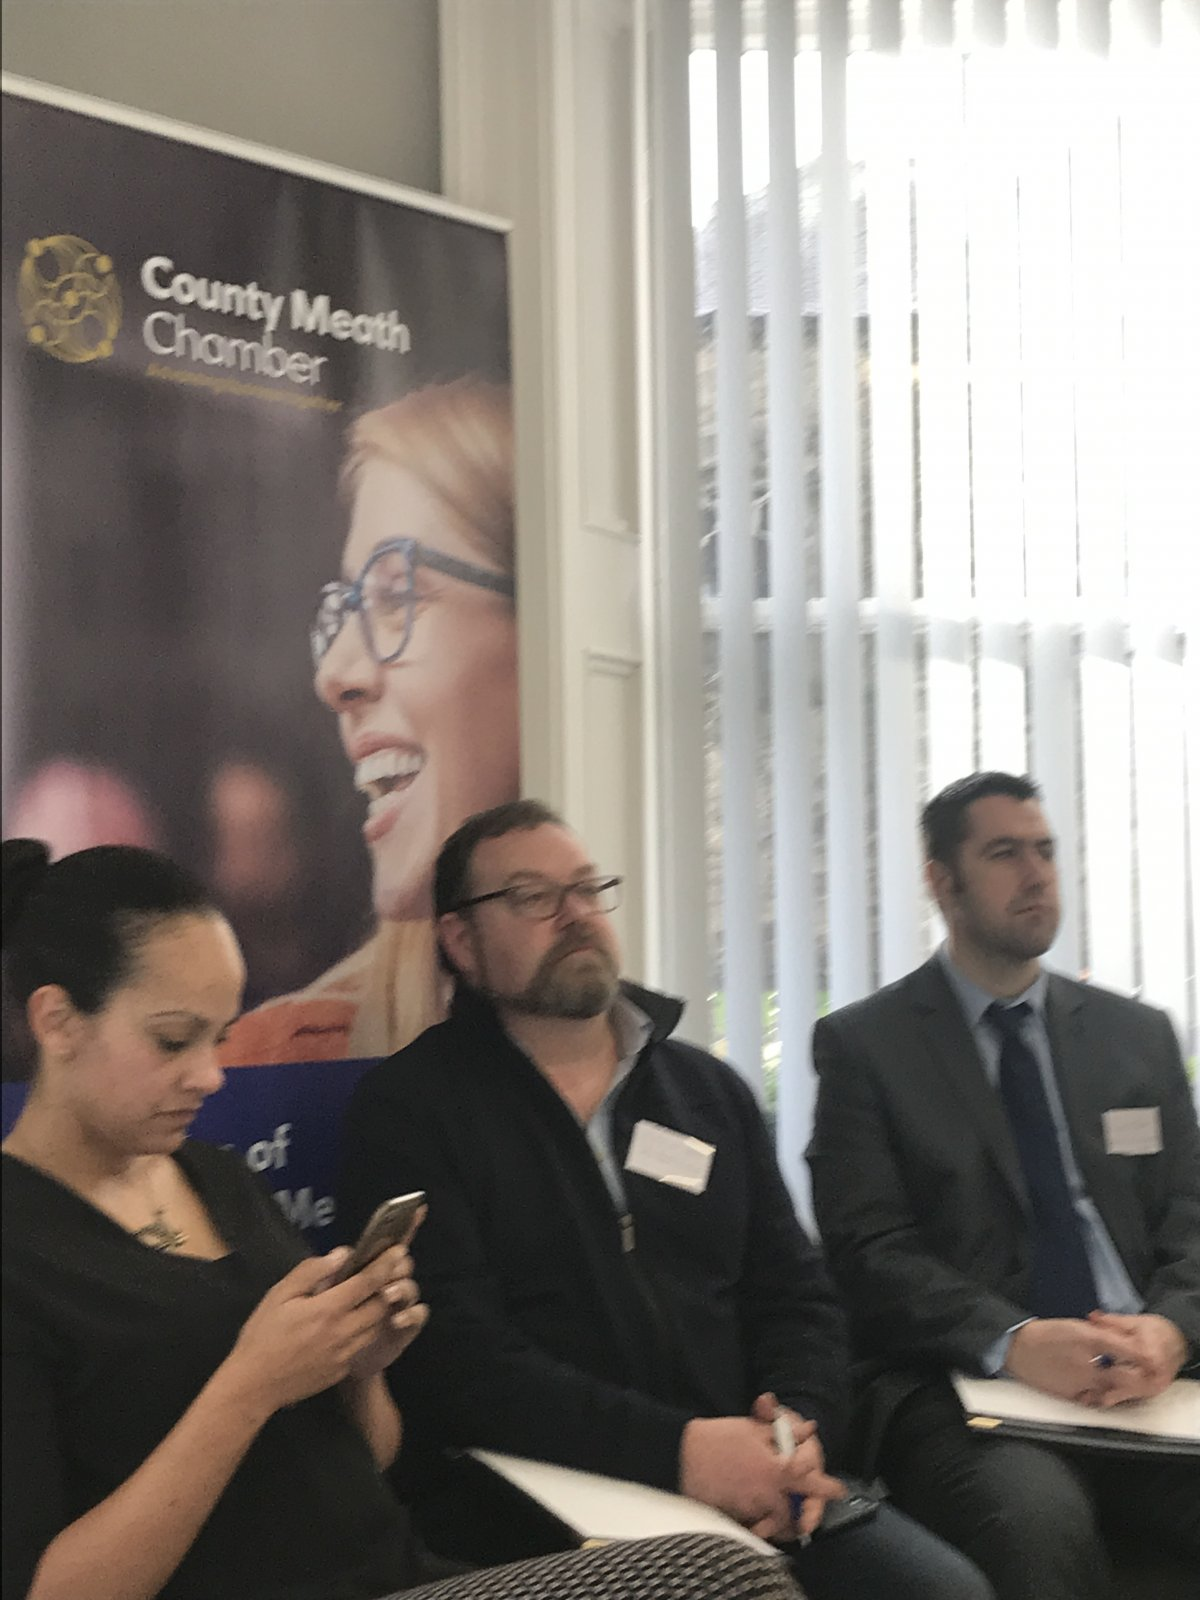 06/03/19 Chamber Breakfast Networking Session